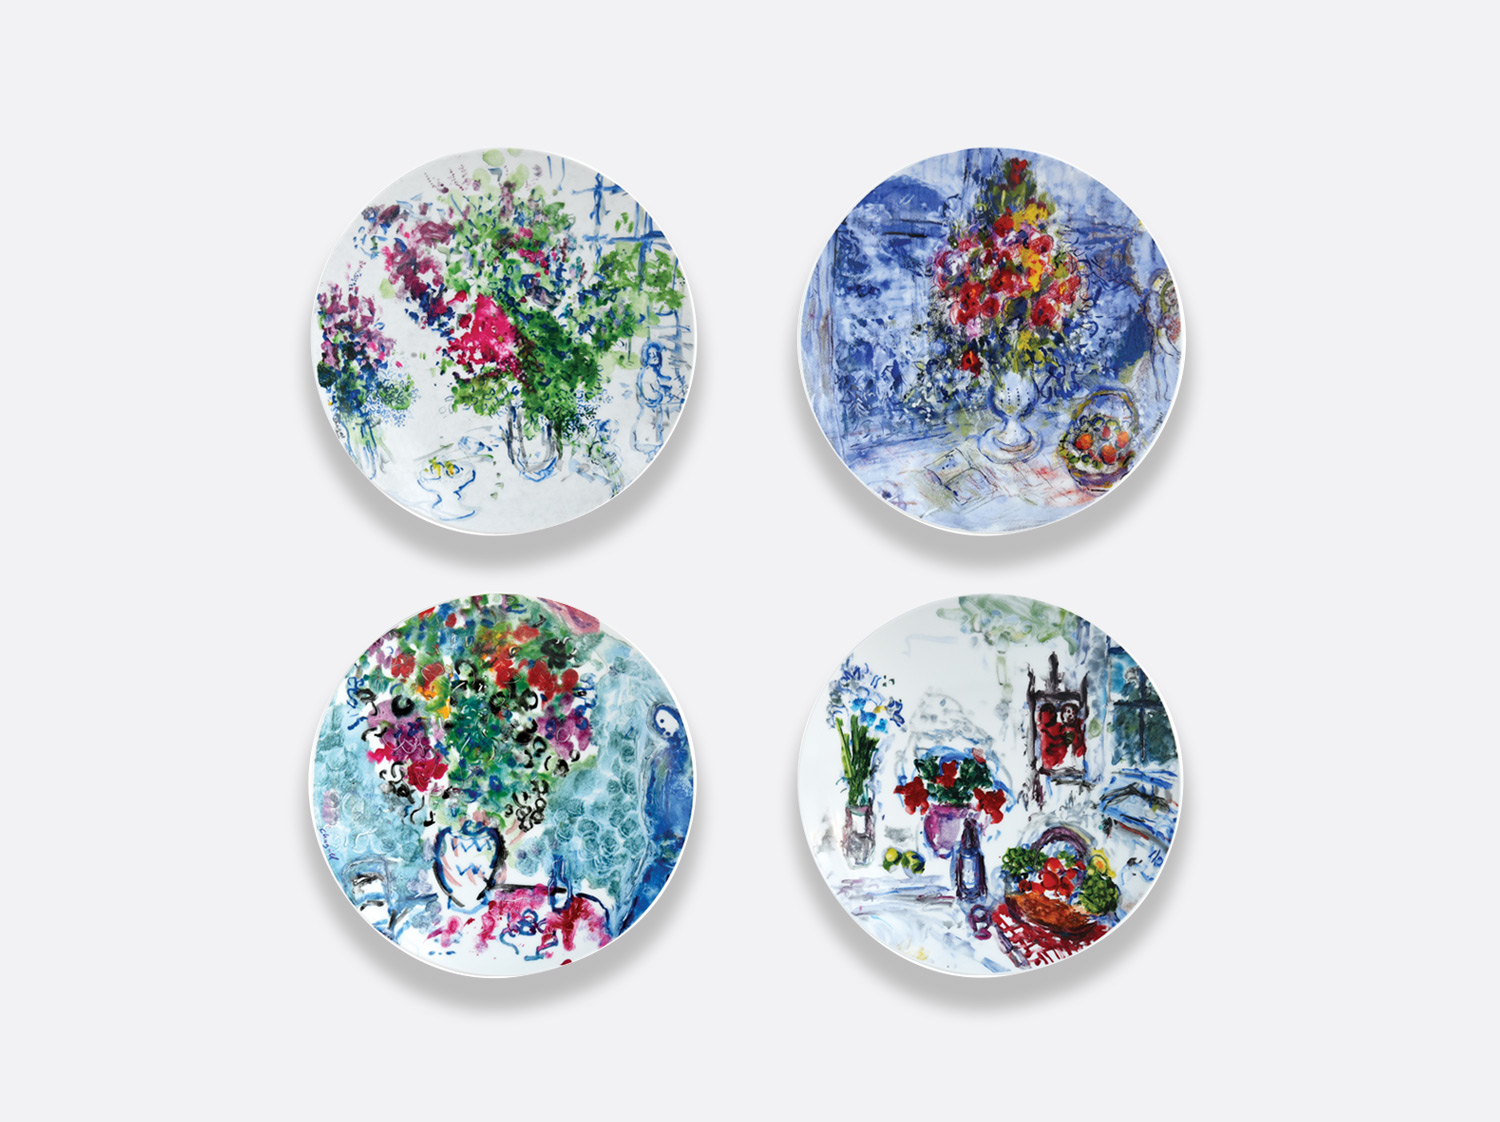 Coffret de 4 assiettes 21 cm assorties en porcelaine de la collection LES BOUQUETS DE FLEURS DE  MARC CHAGALL Bernardaud